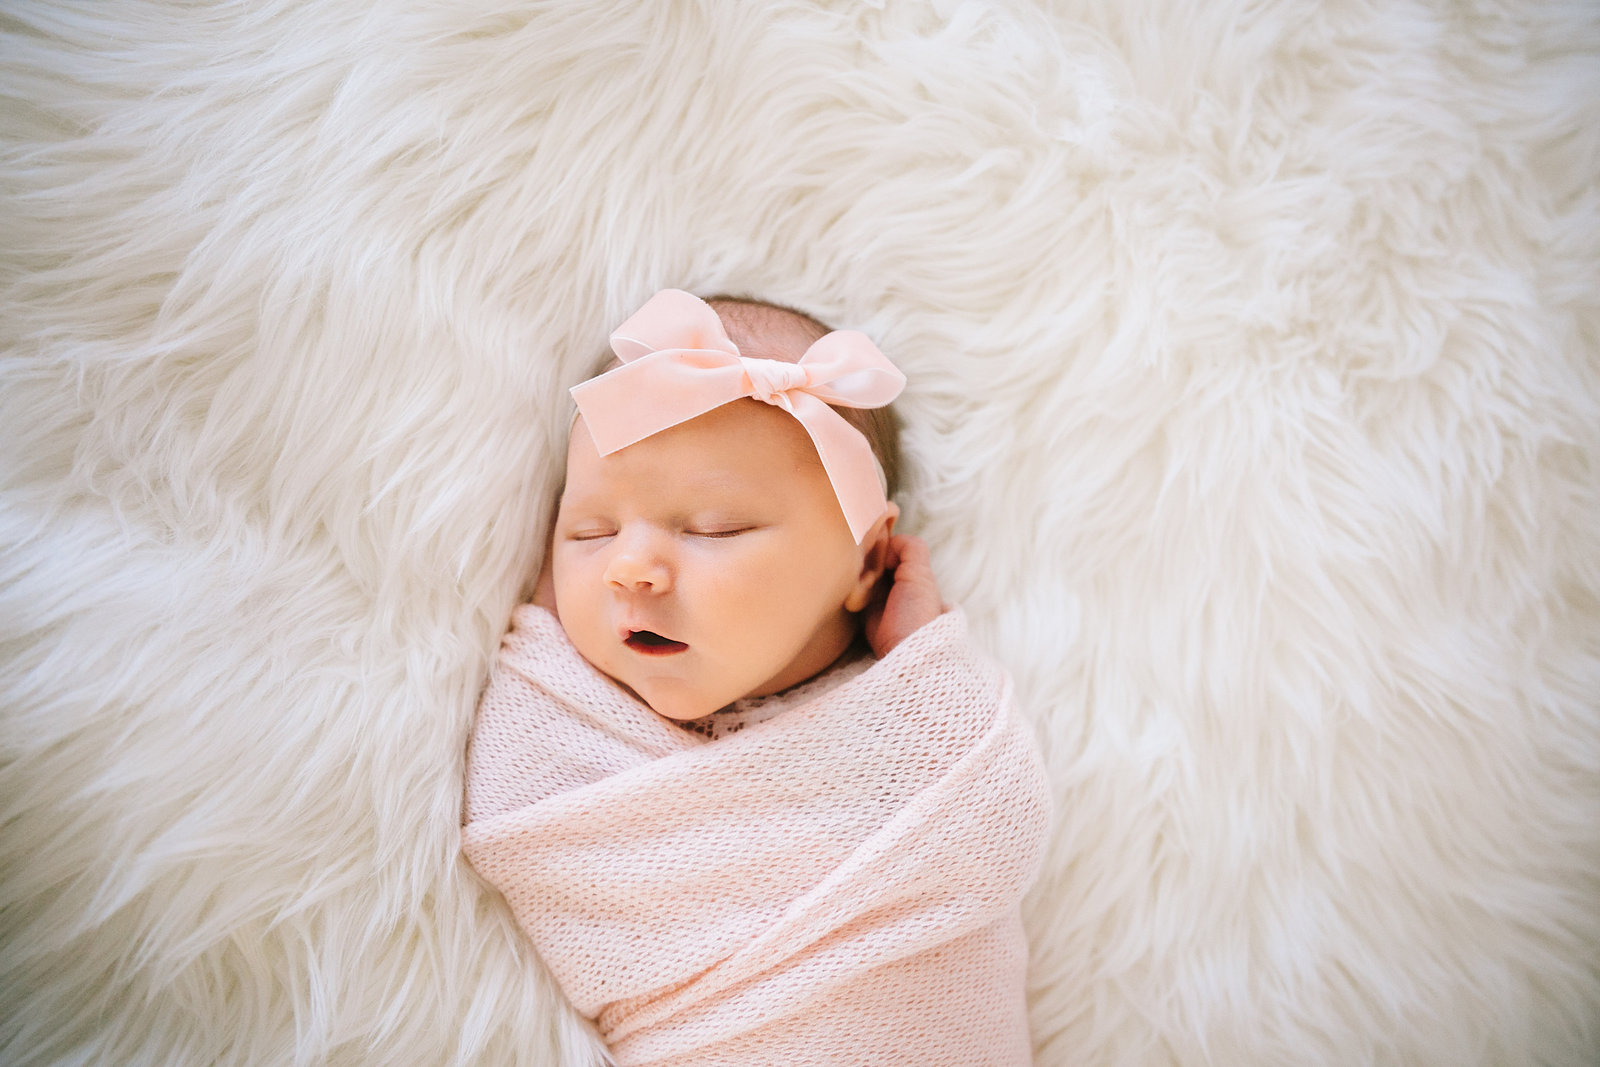 San-Juan-Capistrano-Beach-Newborn-Lifestyle-Photos_29